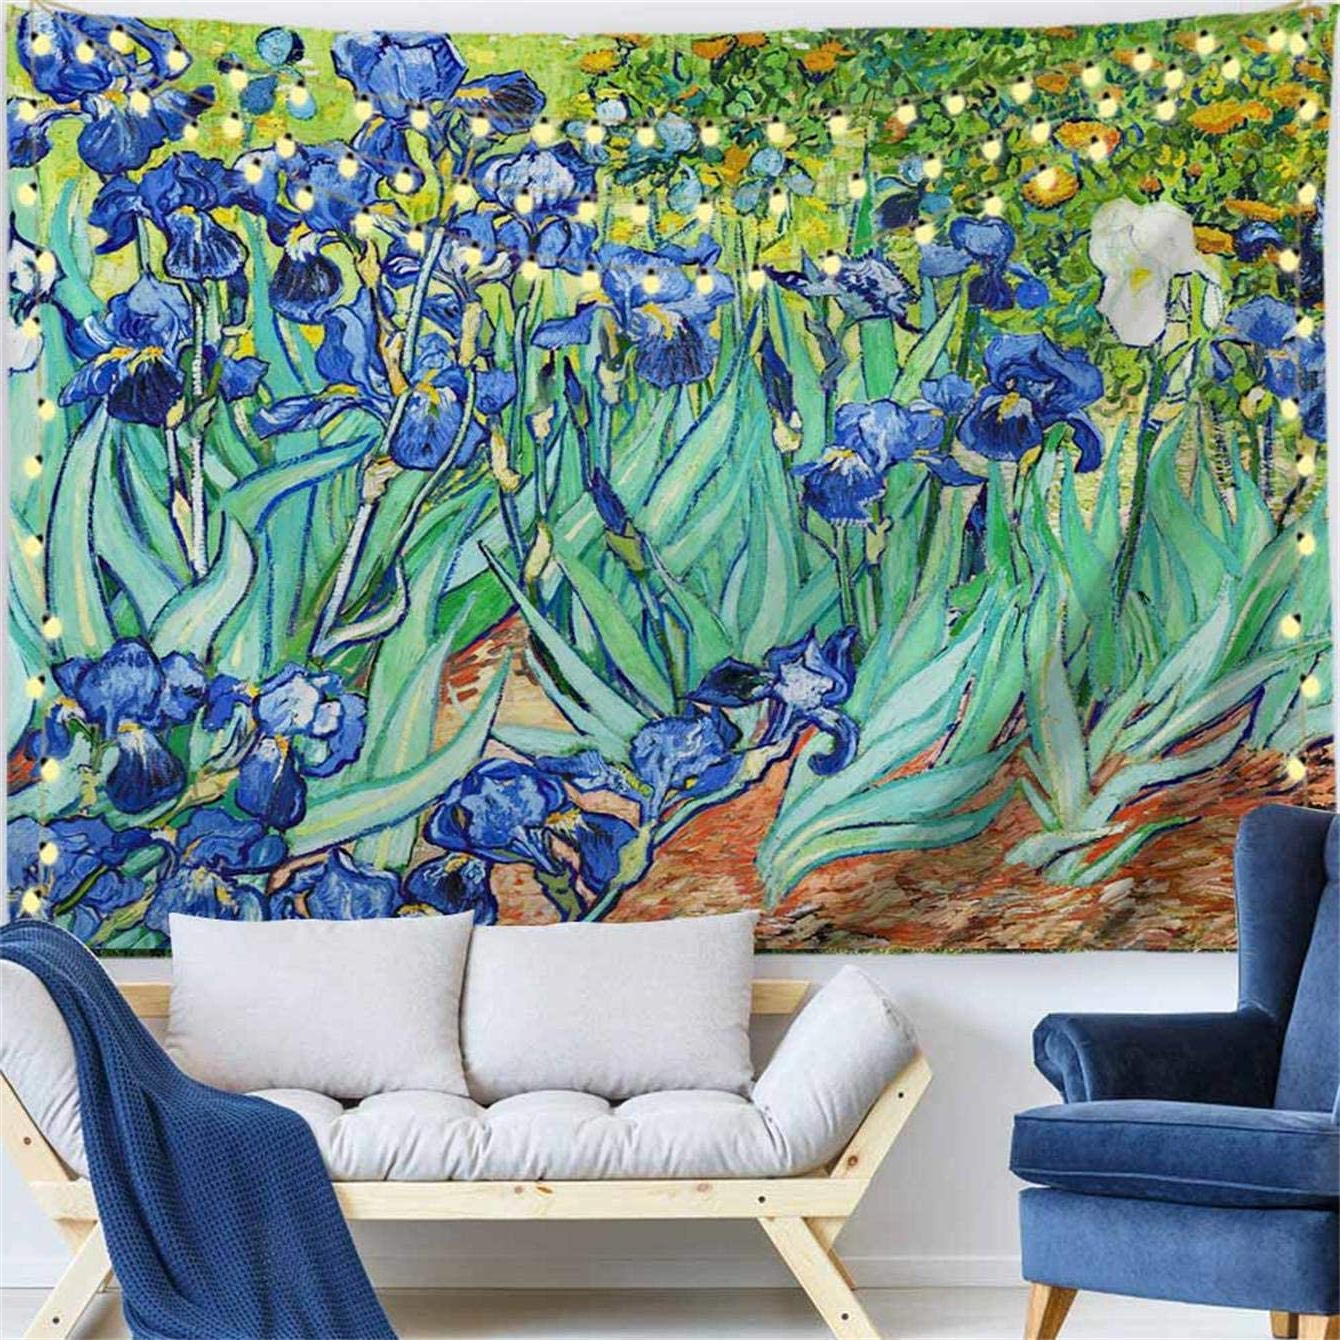 """Well Known Procida Van Gogh Tapestry Wall Hanging Irises Flower Oil Painting Nature Plant Floral Wall Art Home Decor For Dorm Bedroom Living Room, 60"""" W X 40"""" L, With Blended Fabric Irises Tapestries (View 7 of 20)"""